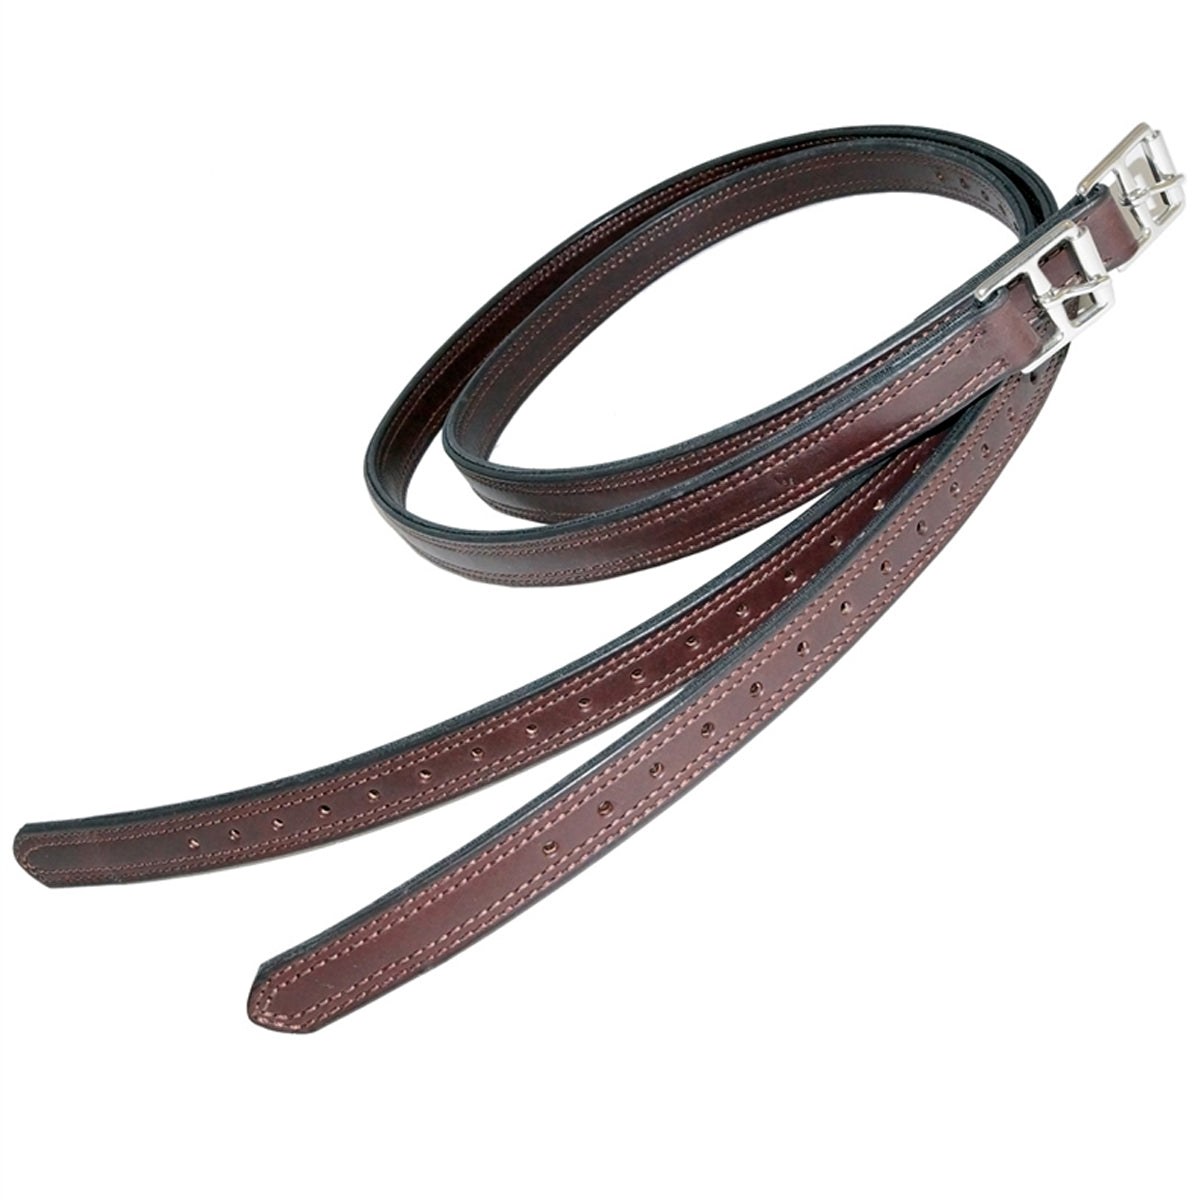 "Nunn Finer Nylon Center 1"" Stirrup Leathers"